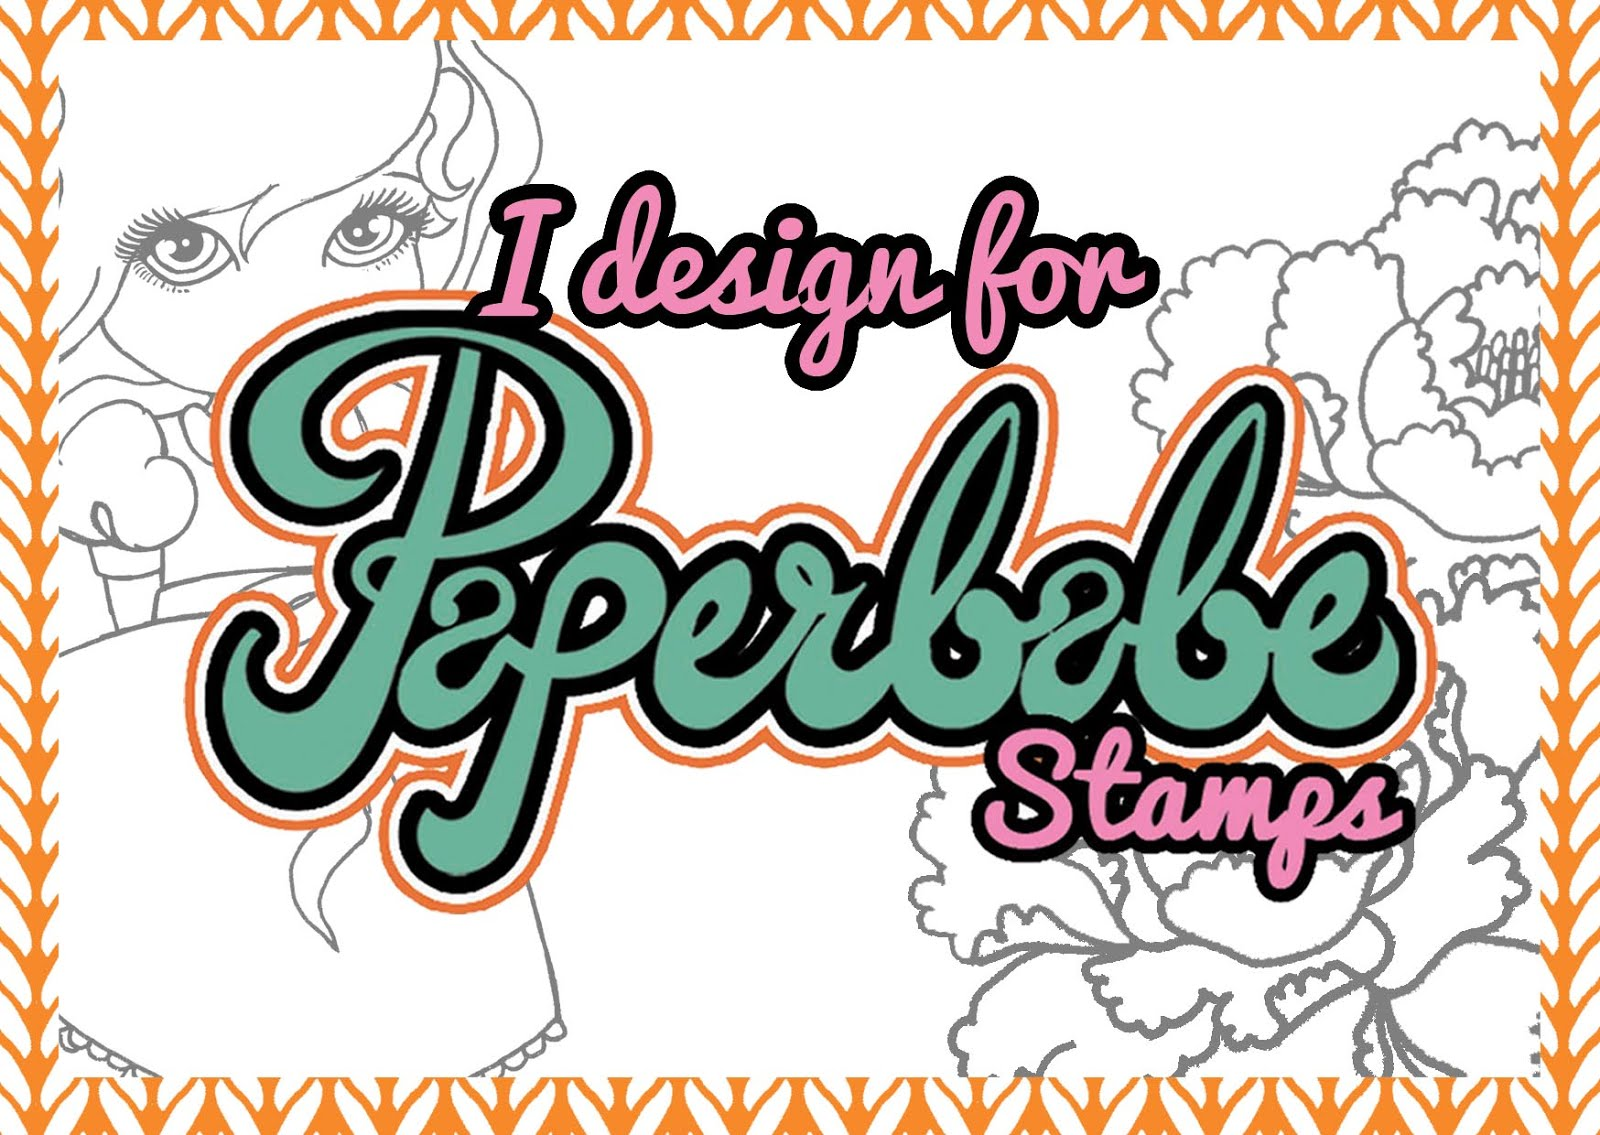 I design for Paperbabe Stamps